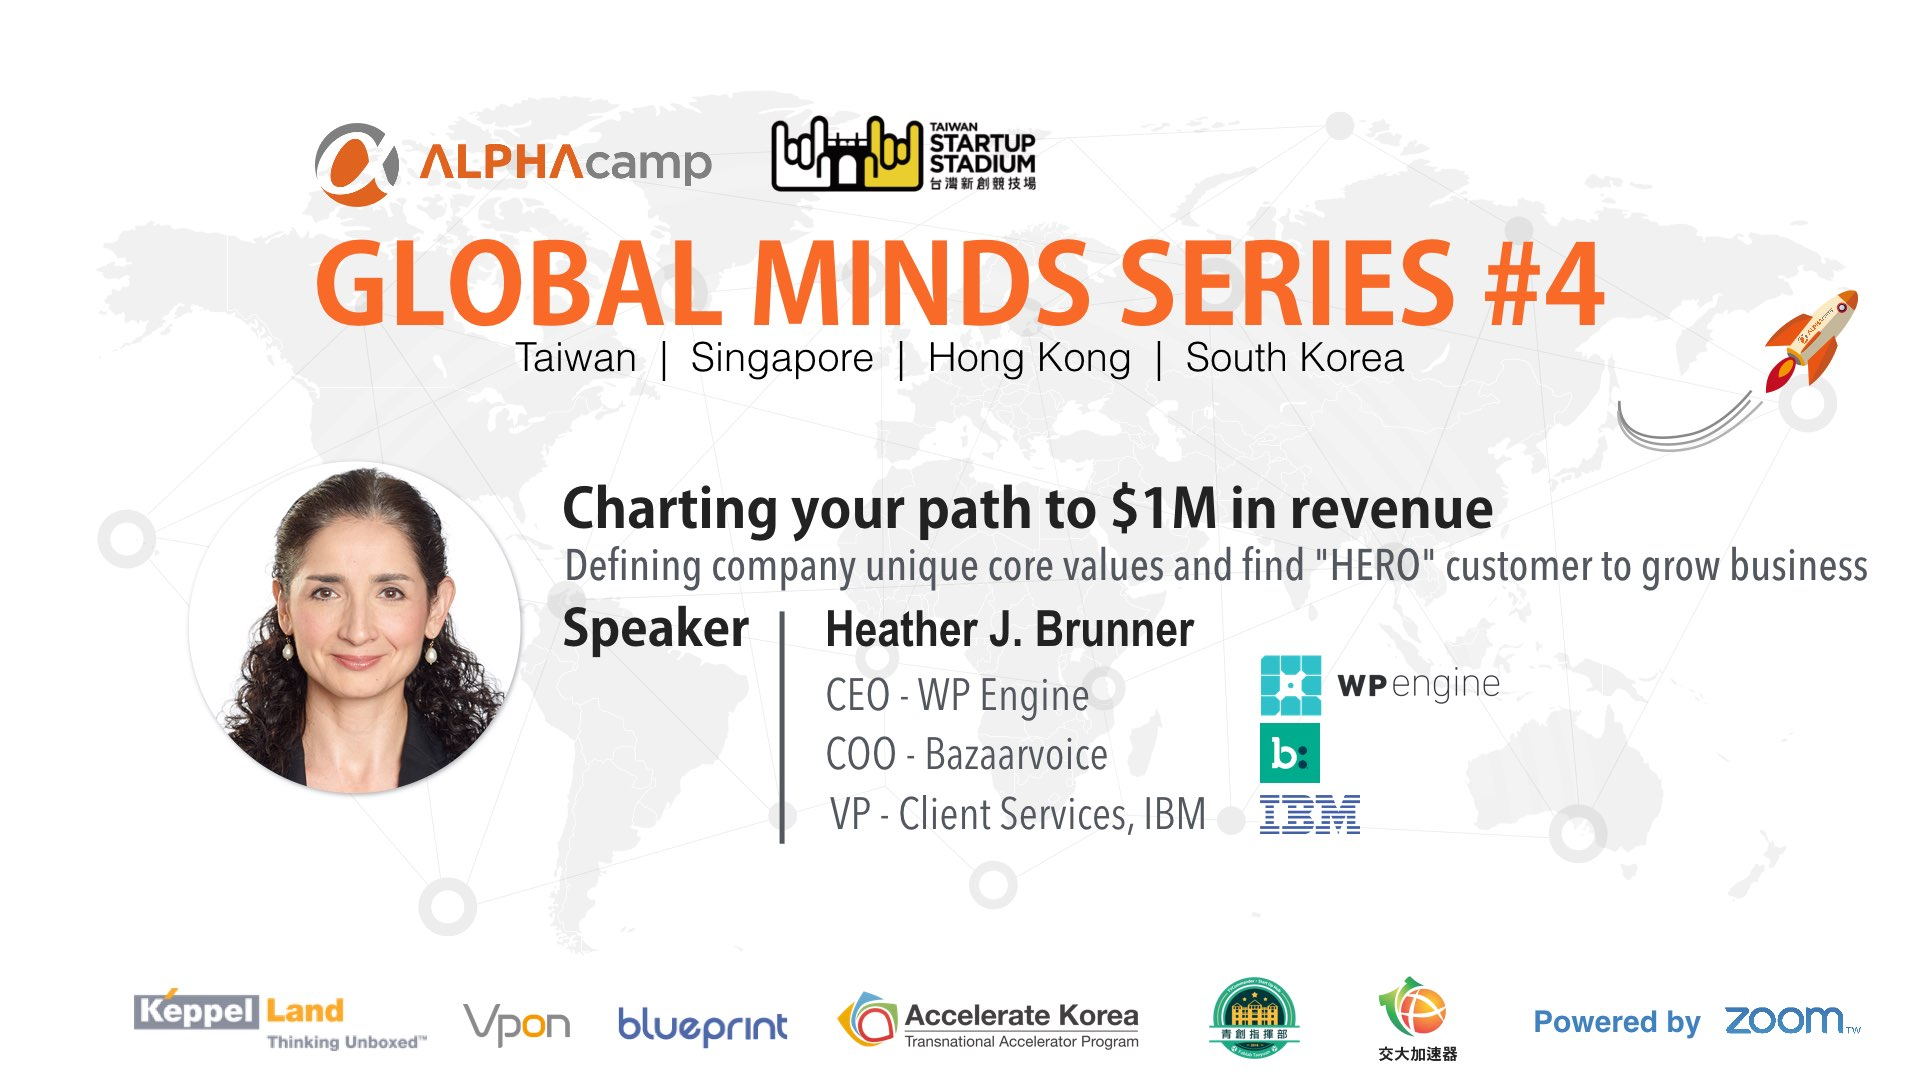 Global minds series 4 hk charting your path to 1m in revenue global minds series 4 hk charting your path to 1m in revenue malvernweather Image collections